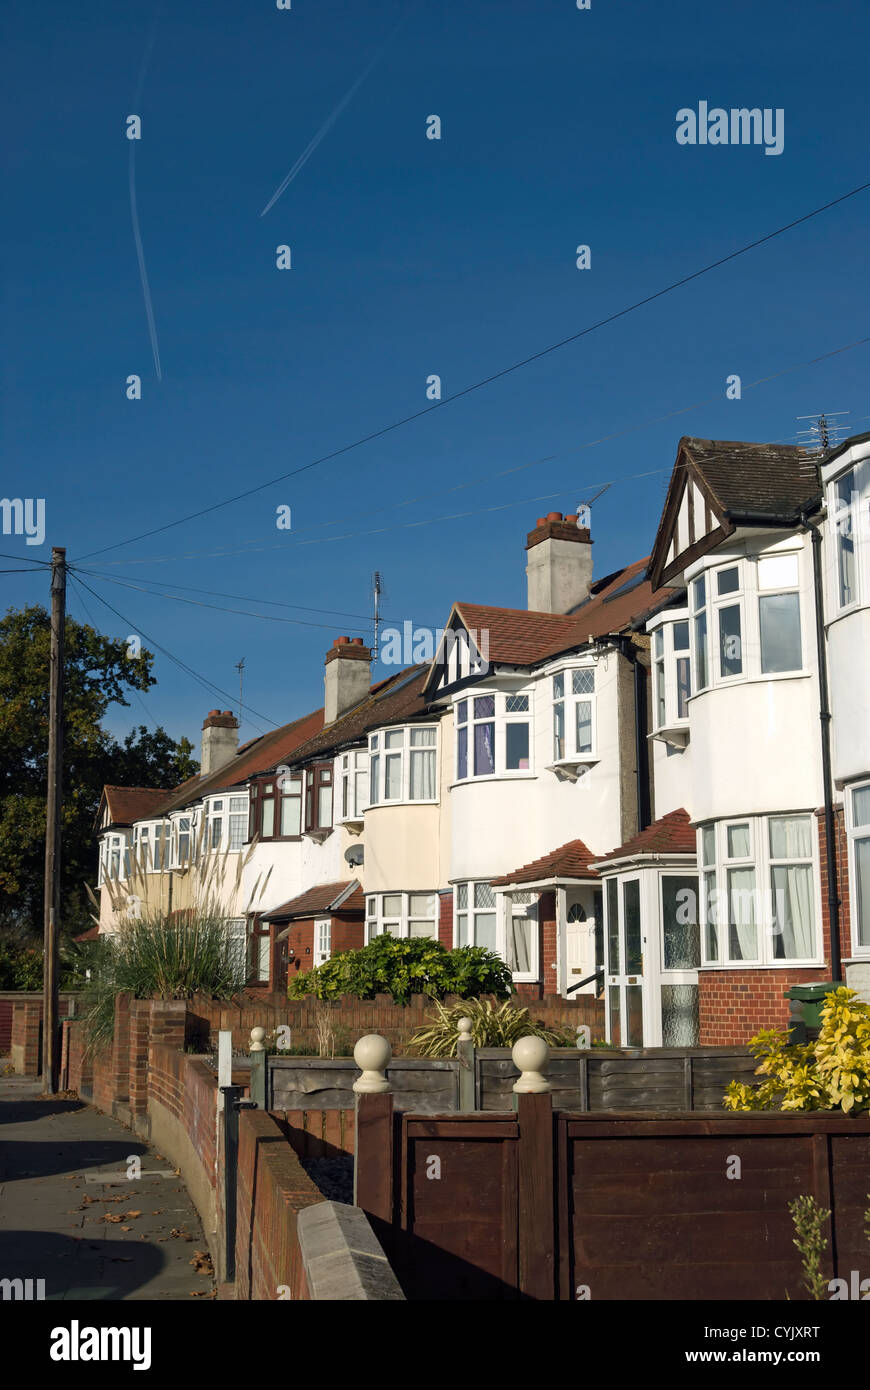 terrace of 1930s houses with bay windows, whitton, middlesex, england - Stock Image